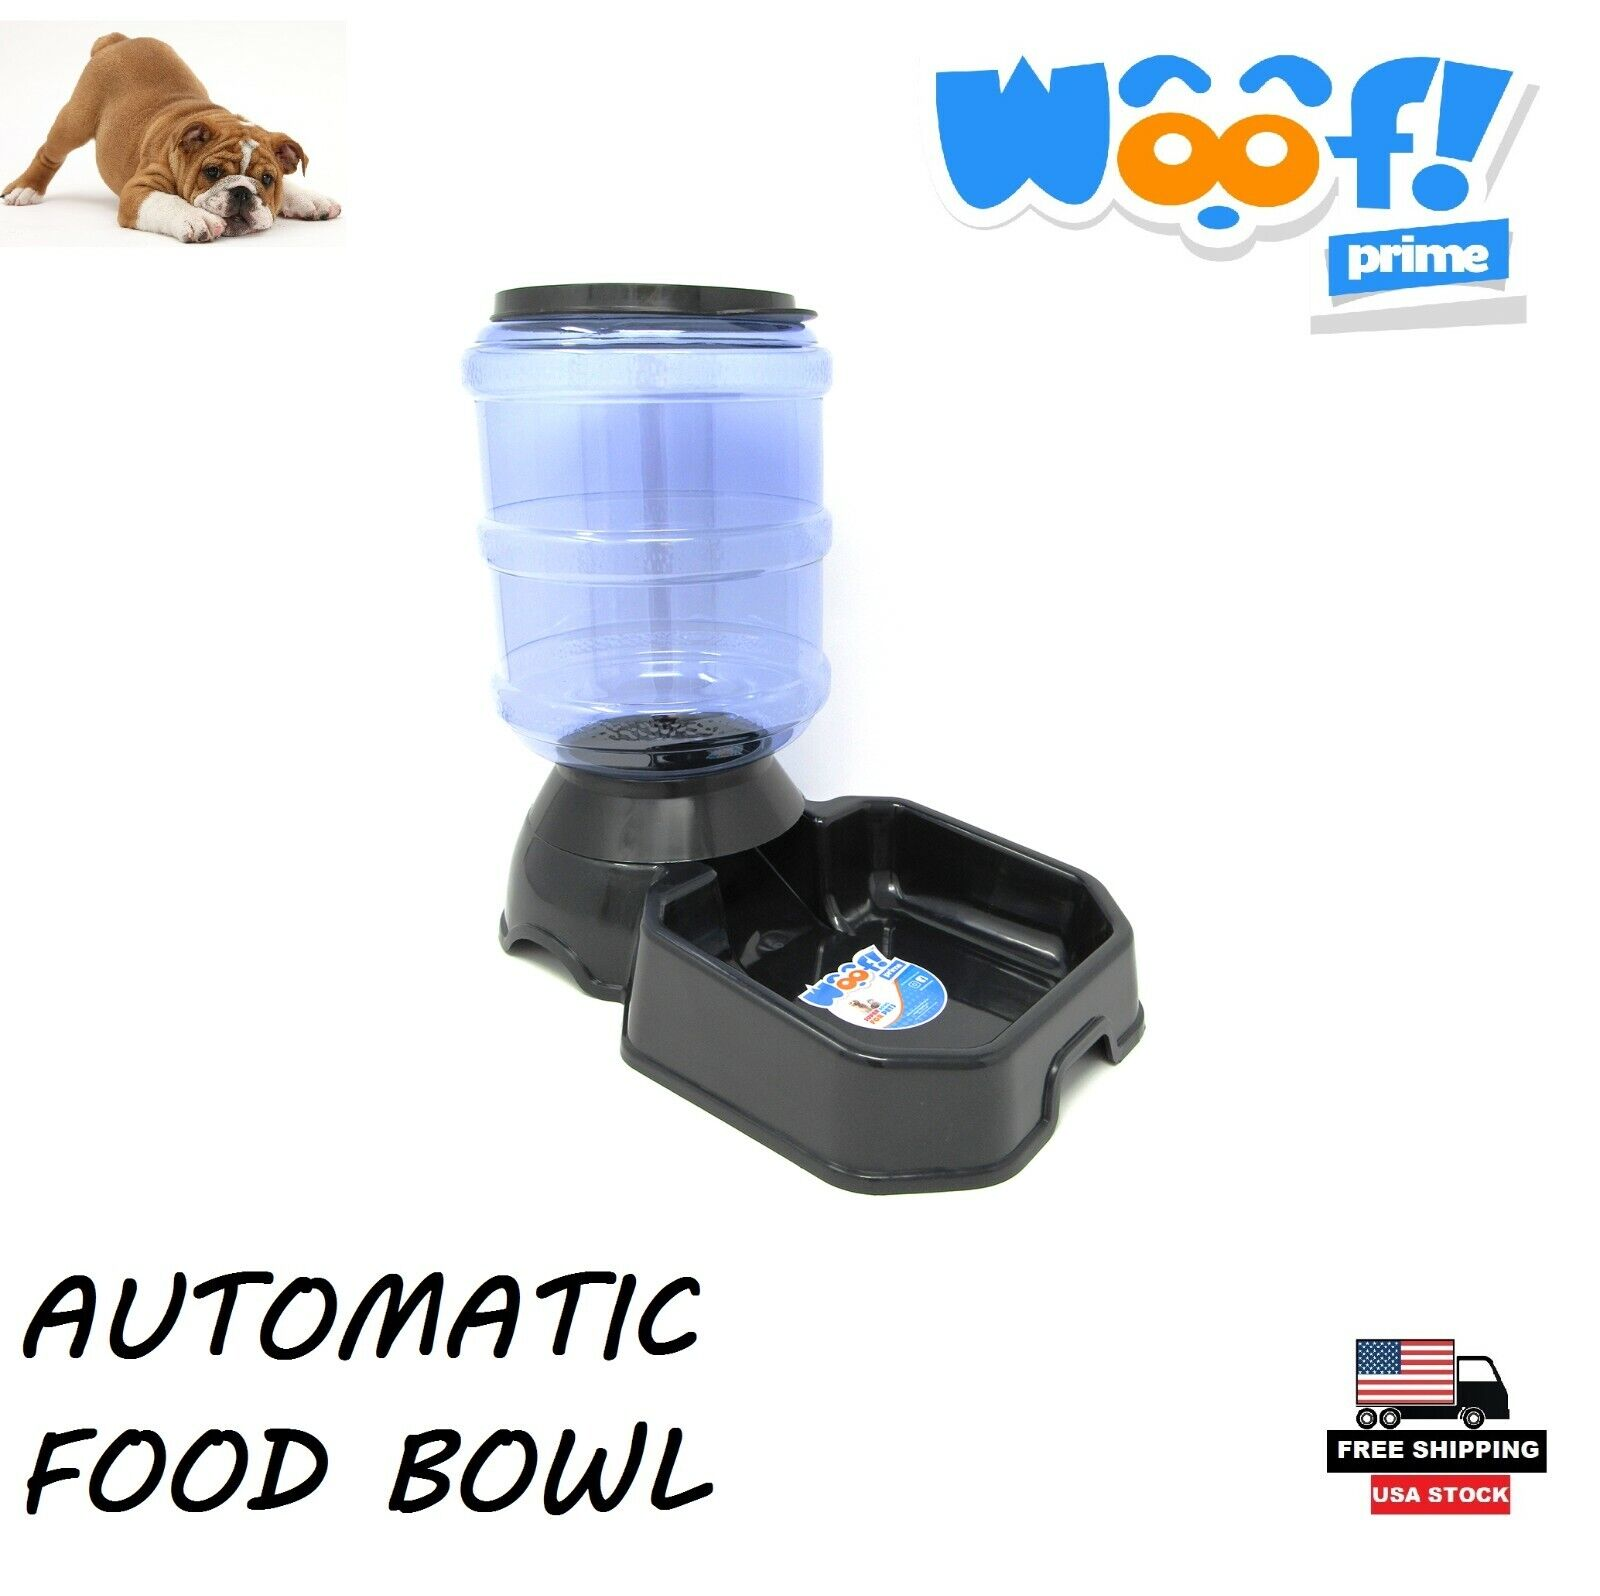 Automatic Pet Food Dispenser Black Color For Dogs Cats Woof! Prime